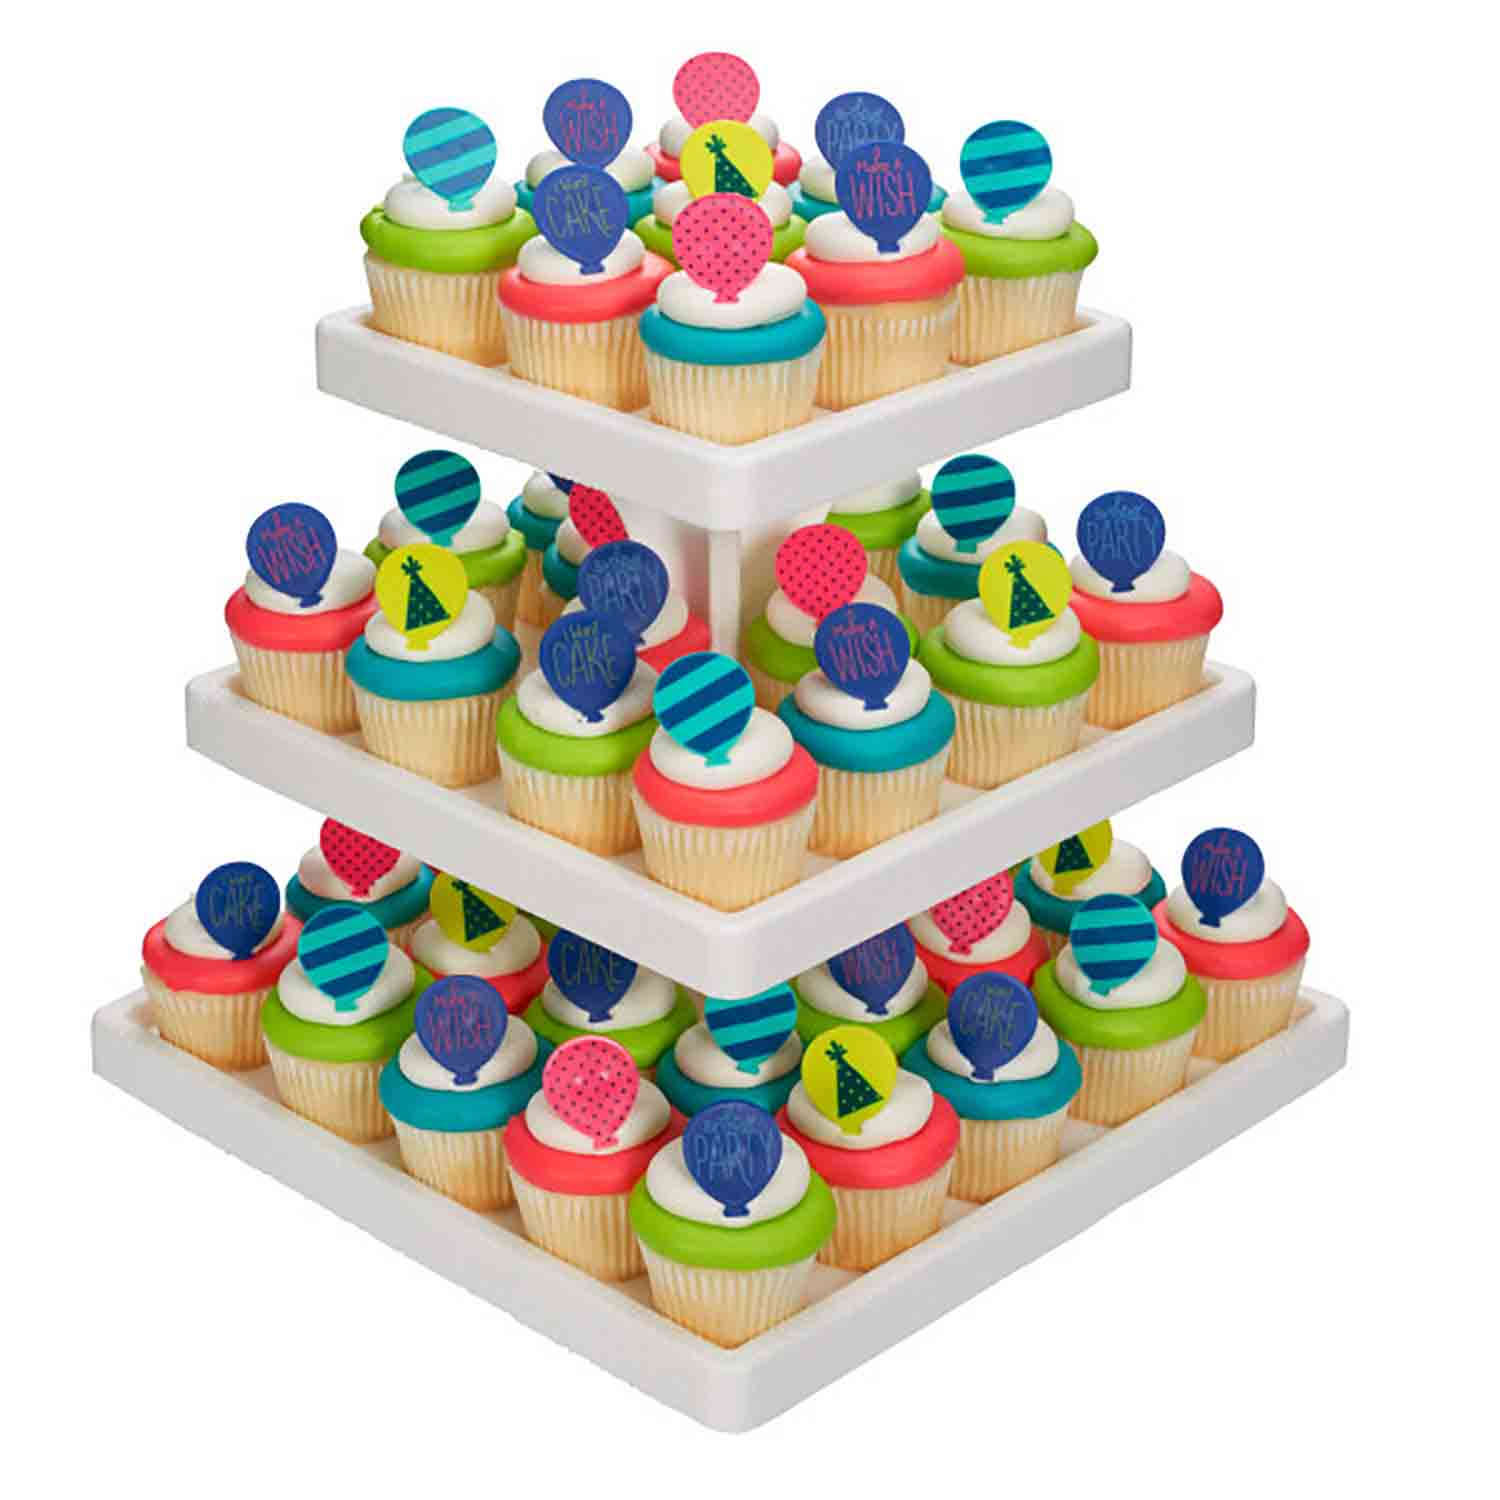 Square Stand - Single Use 3-Tier Treat Tree